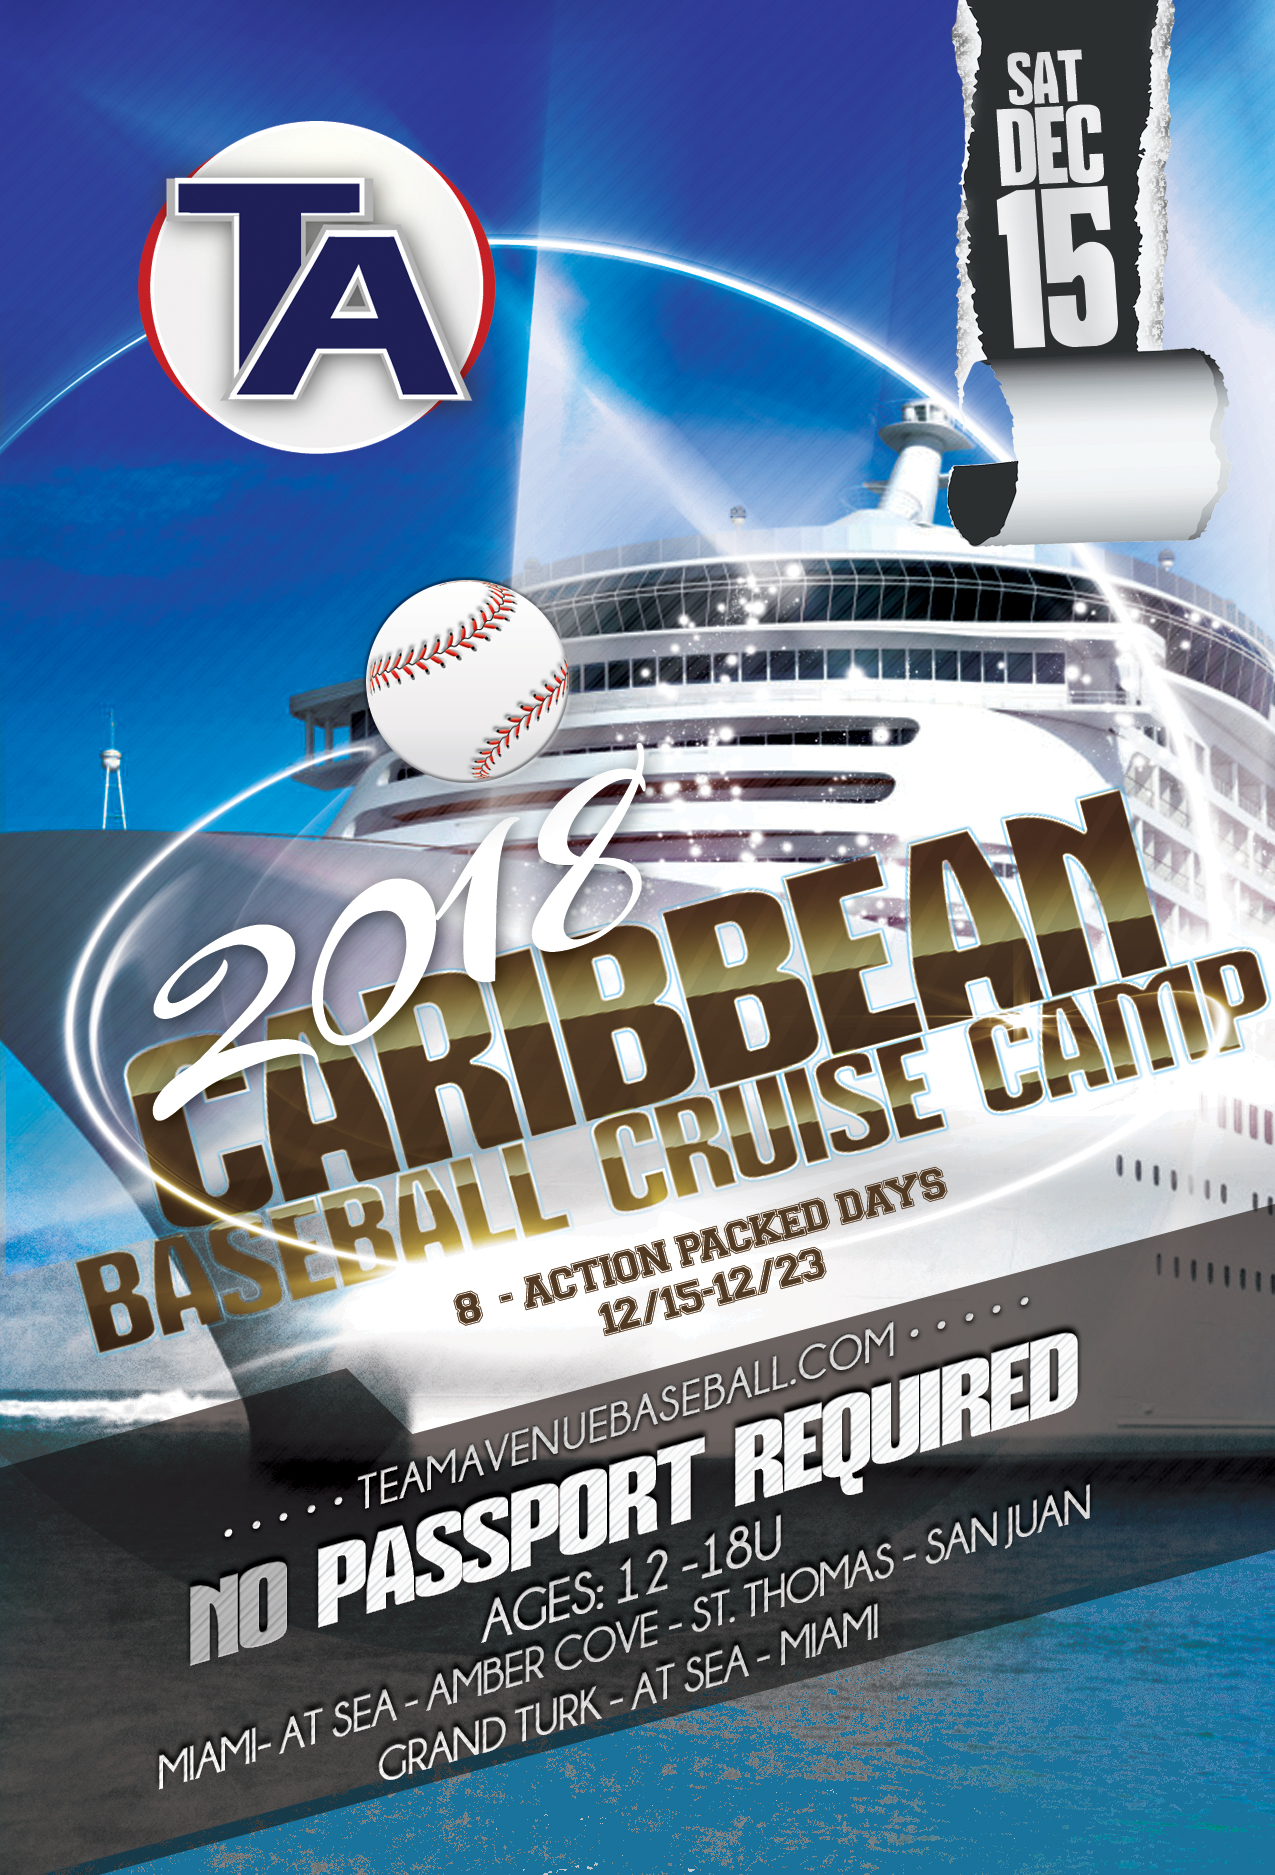 CARIBBEAN BASEBALL CRUISE CAMP